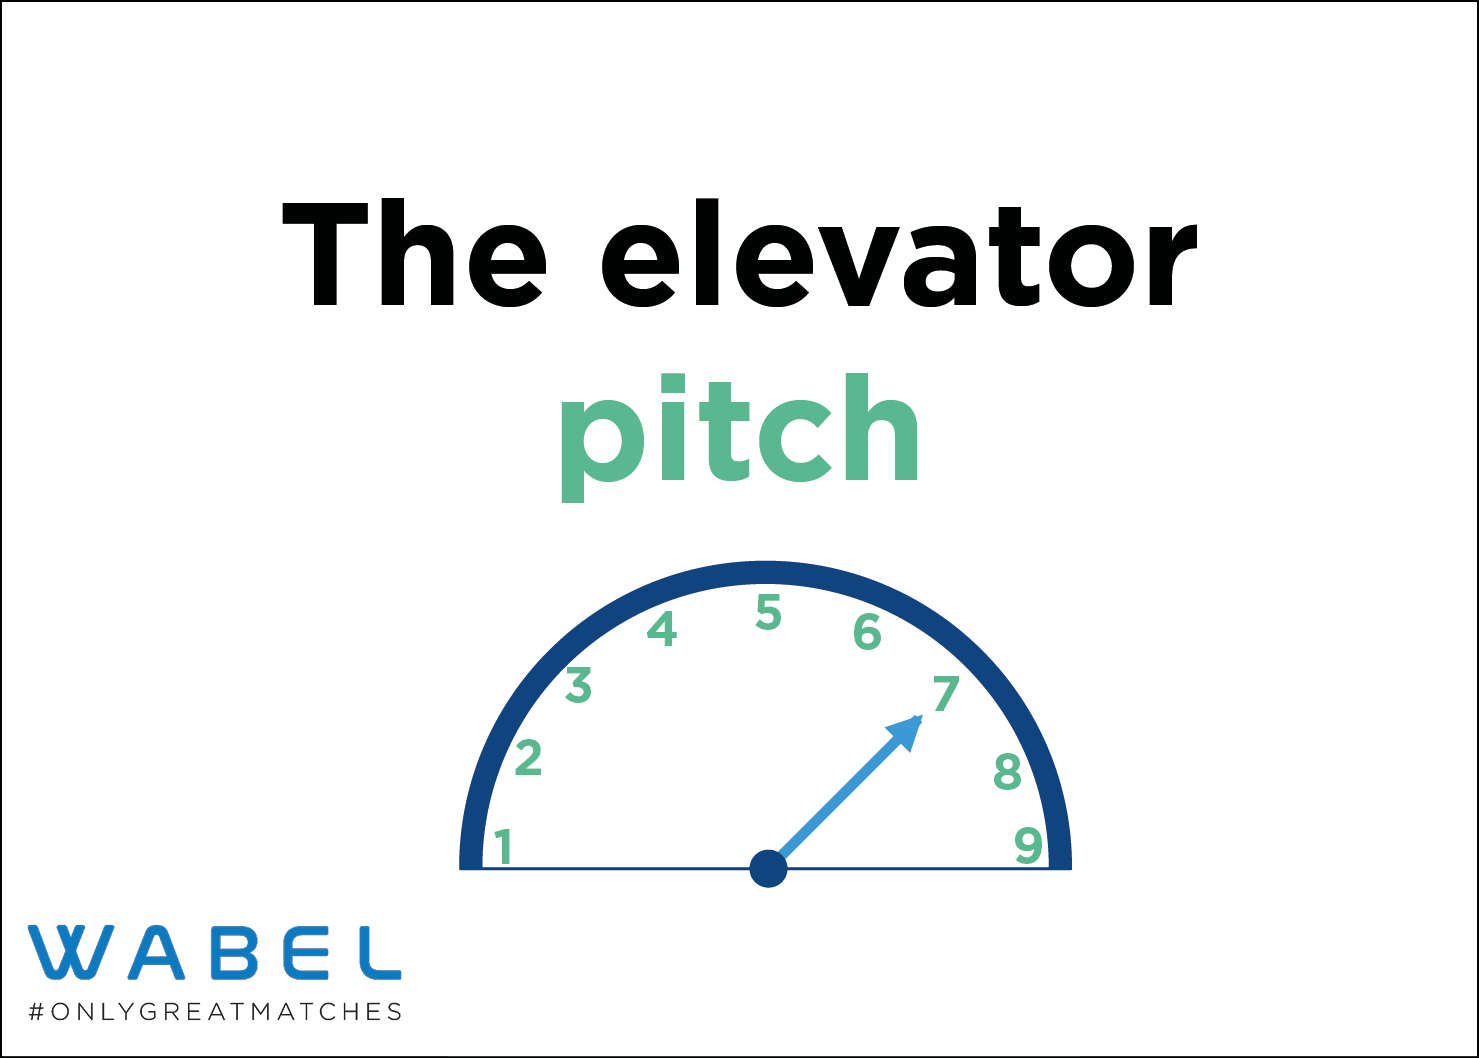 What's an elevator pitch and why do you need one?